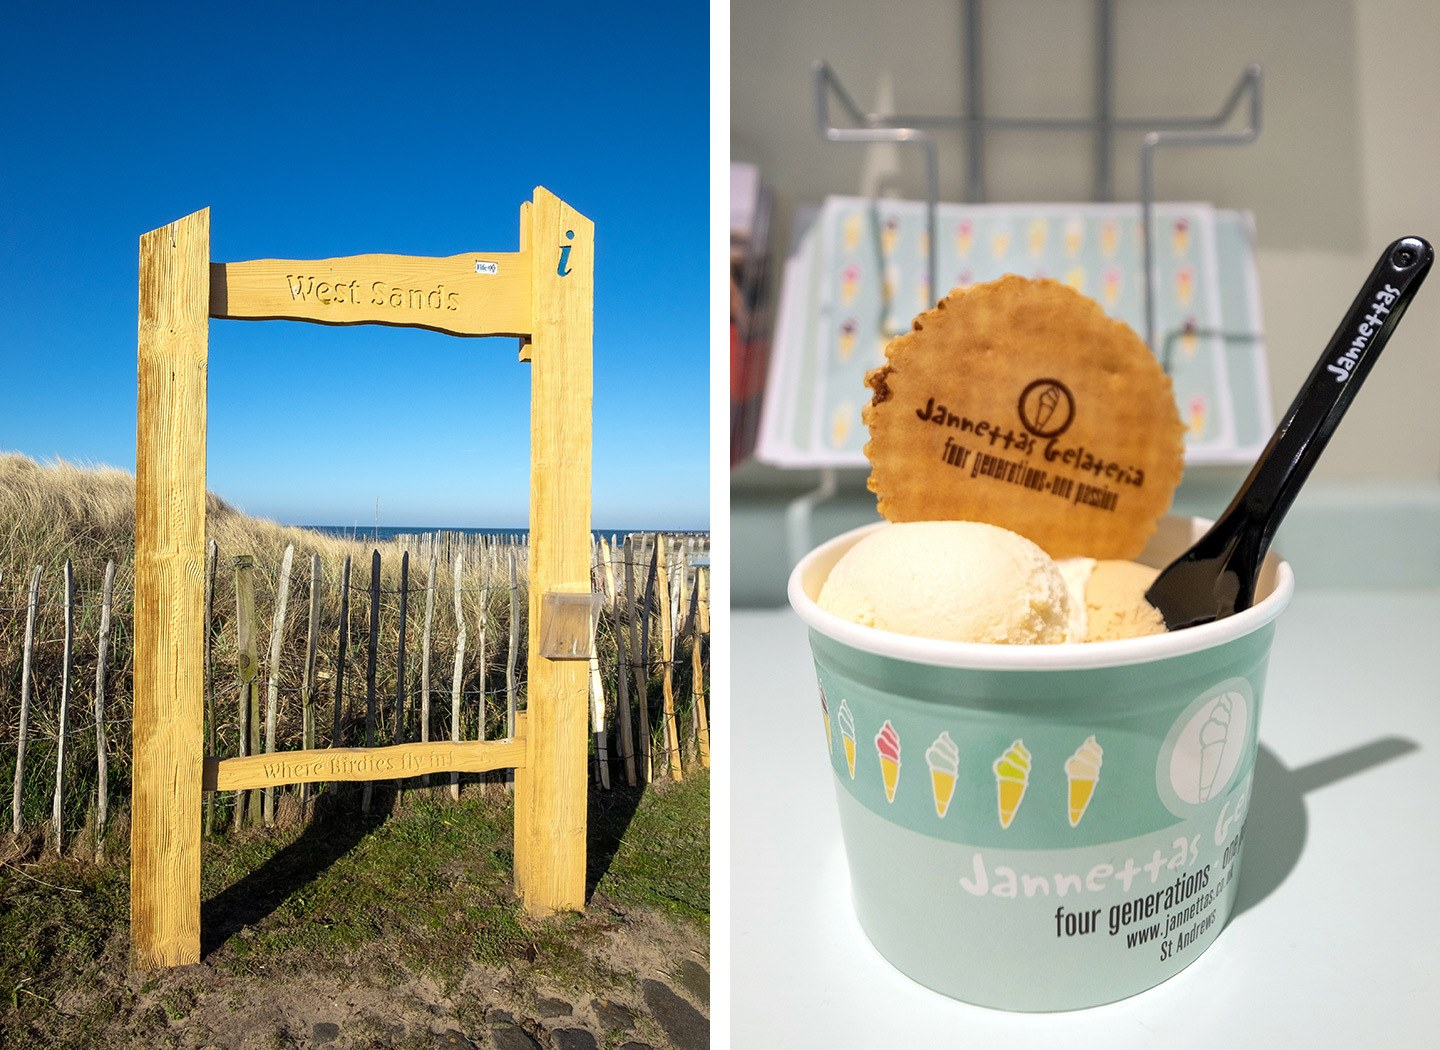 West Sands beach and ice cream at Janettas Gelateria